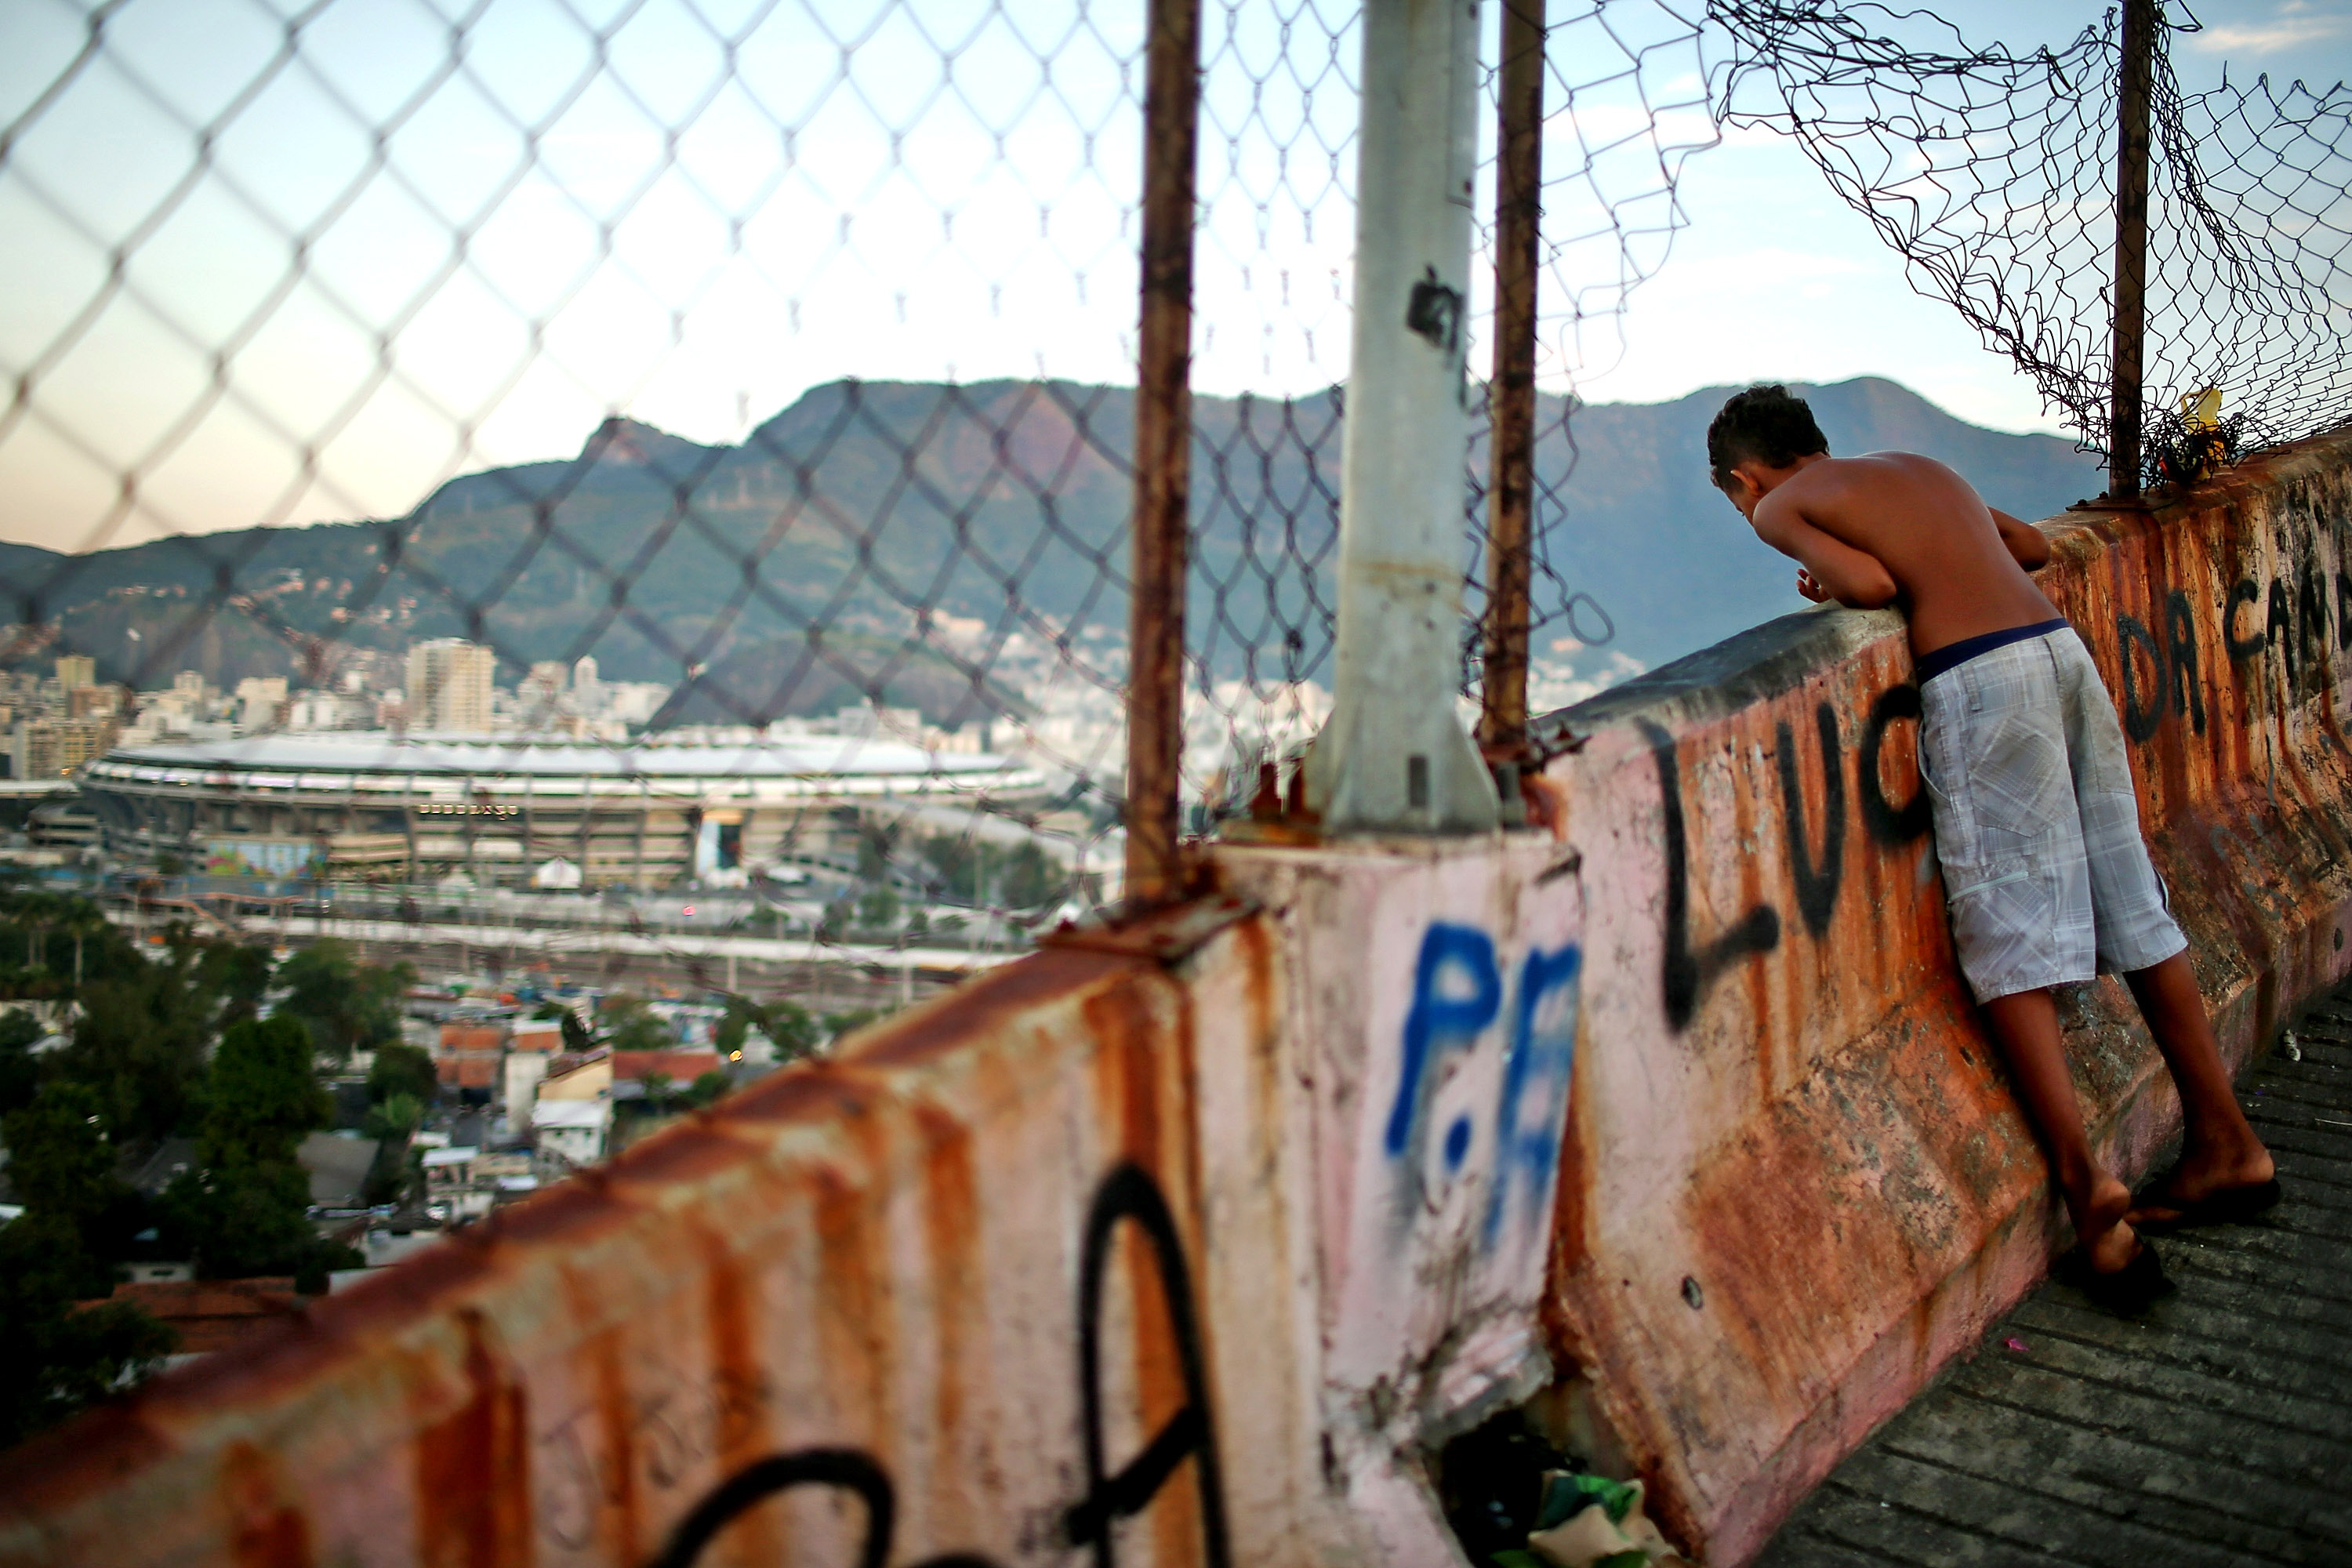 A boy looks out for a fallen kite as kids fly kites in the Mangueira favela which overlooks famed Maracana Stadium on June 5, 2014 in Rio de Janeiro.